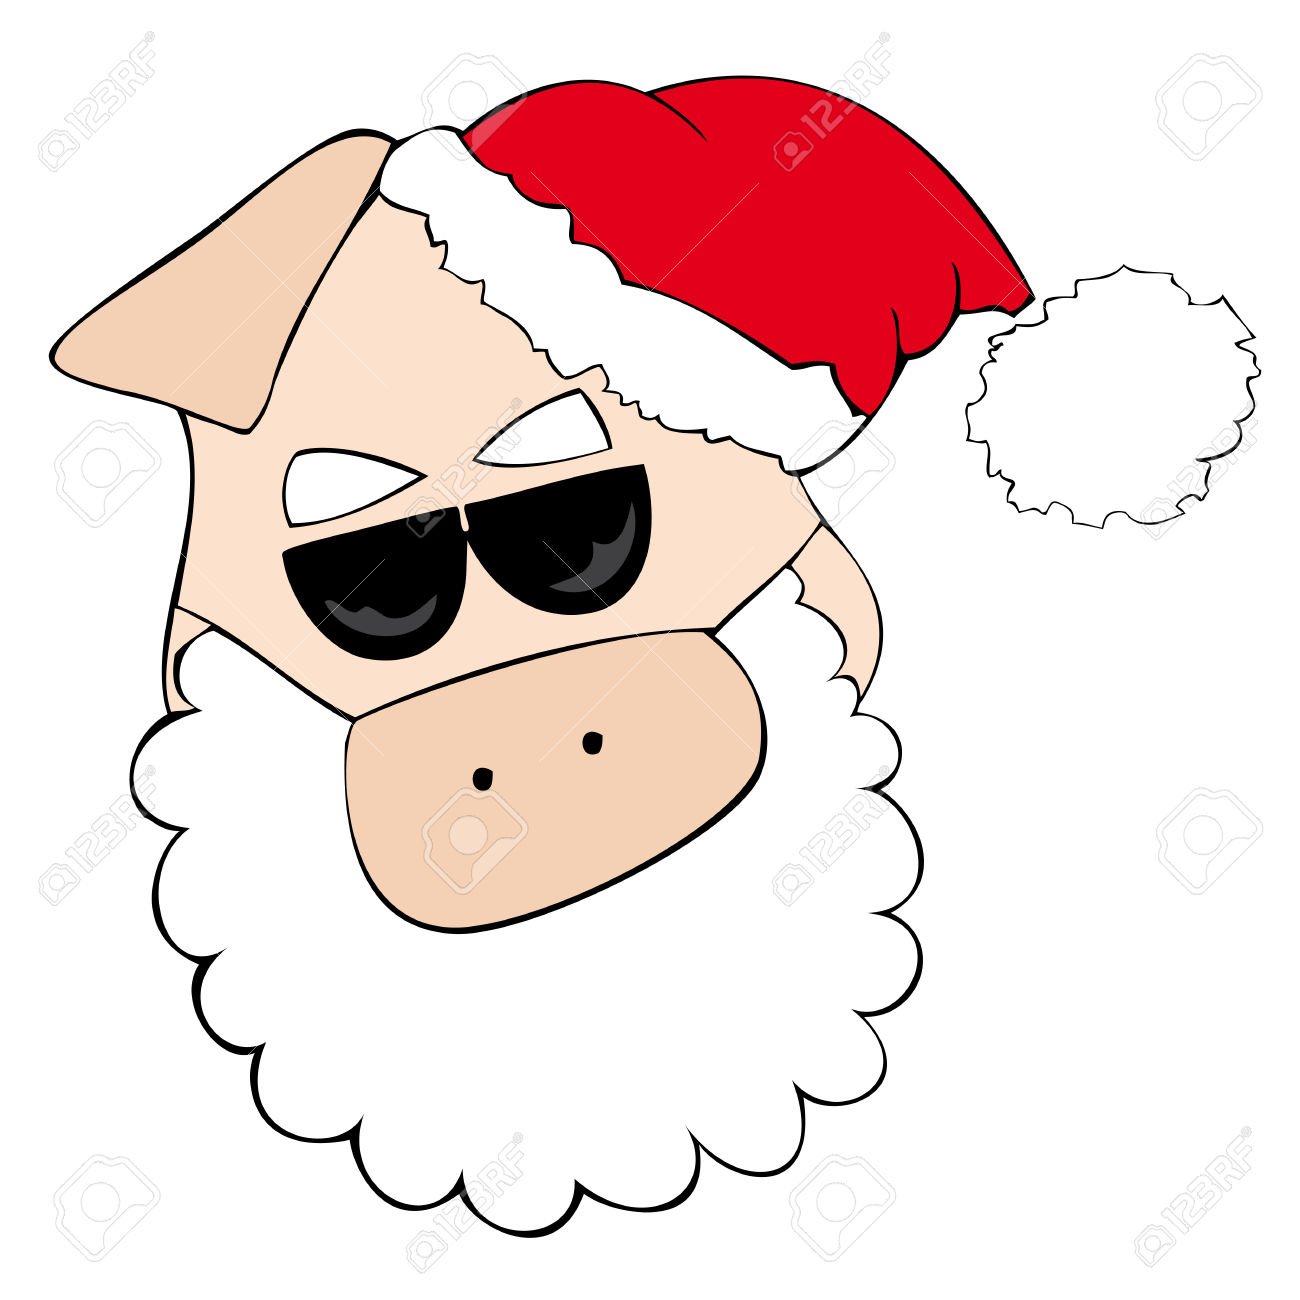 Pig with sunglasses clipart.